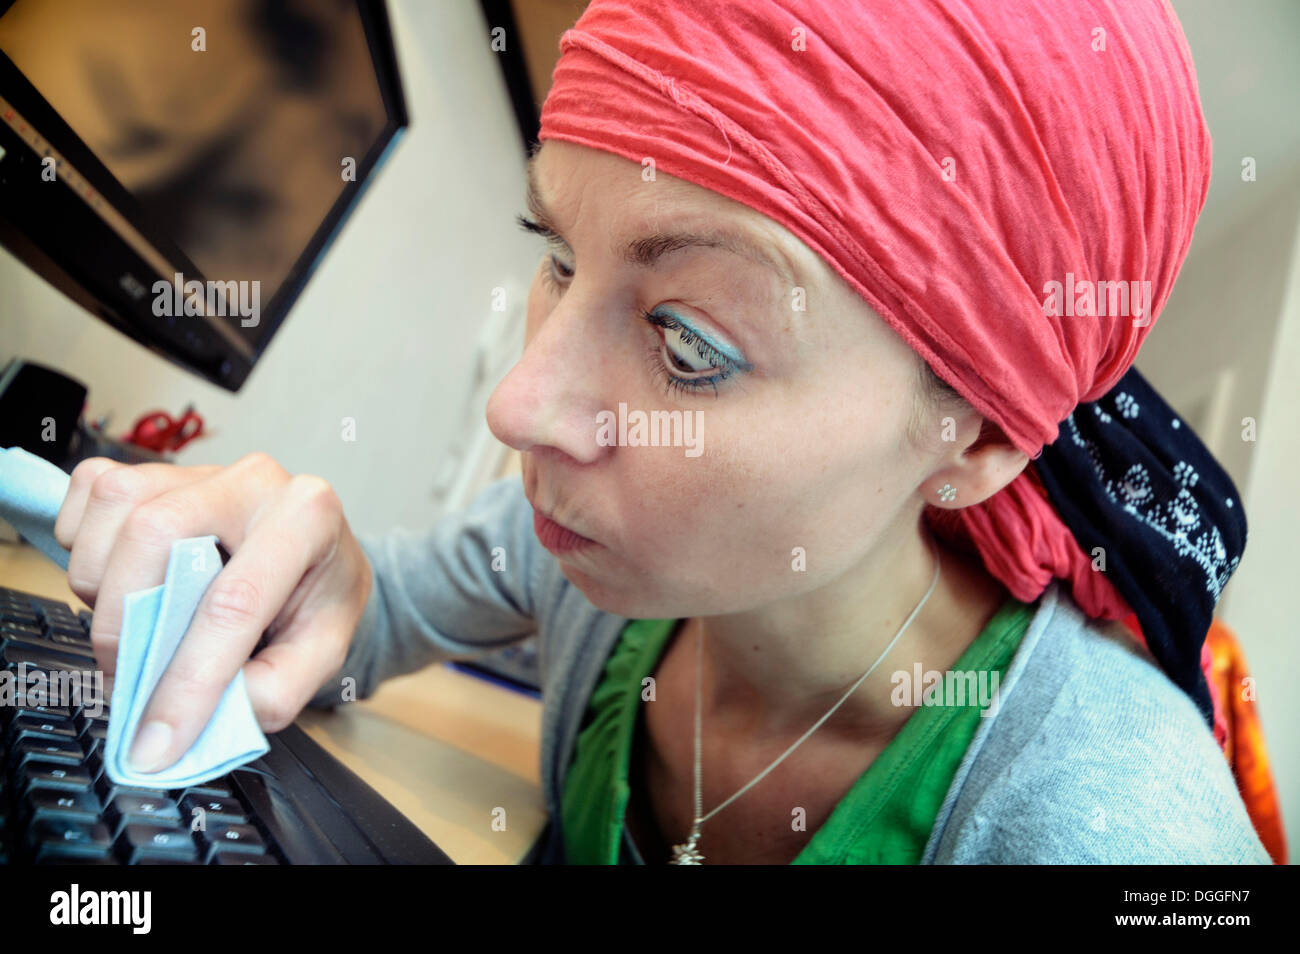 Cleaning lady cleaning a computer keyboard, Germany - Stock Image